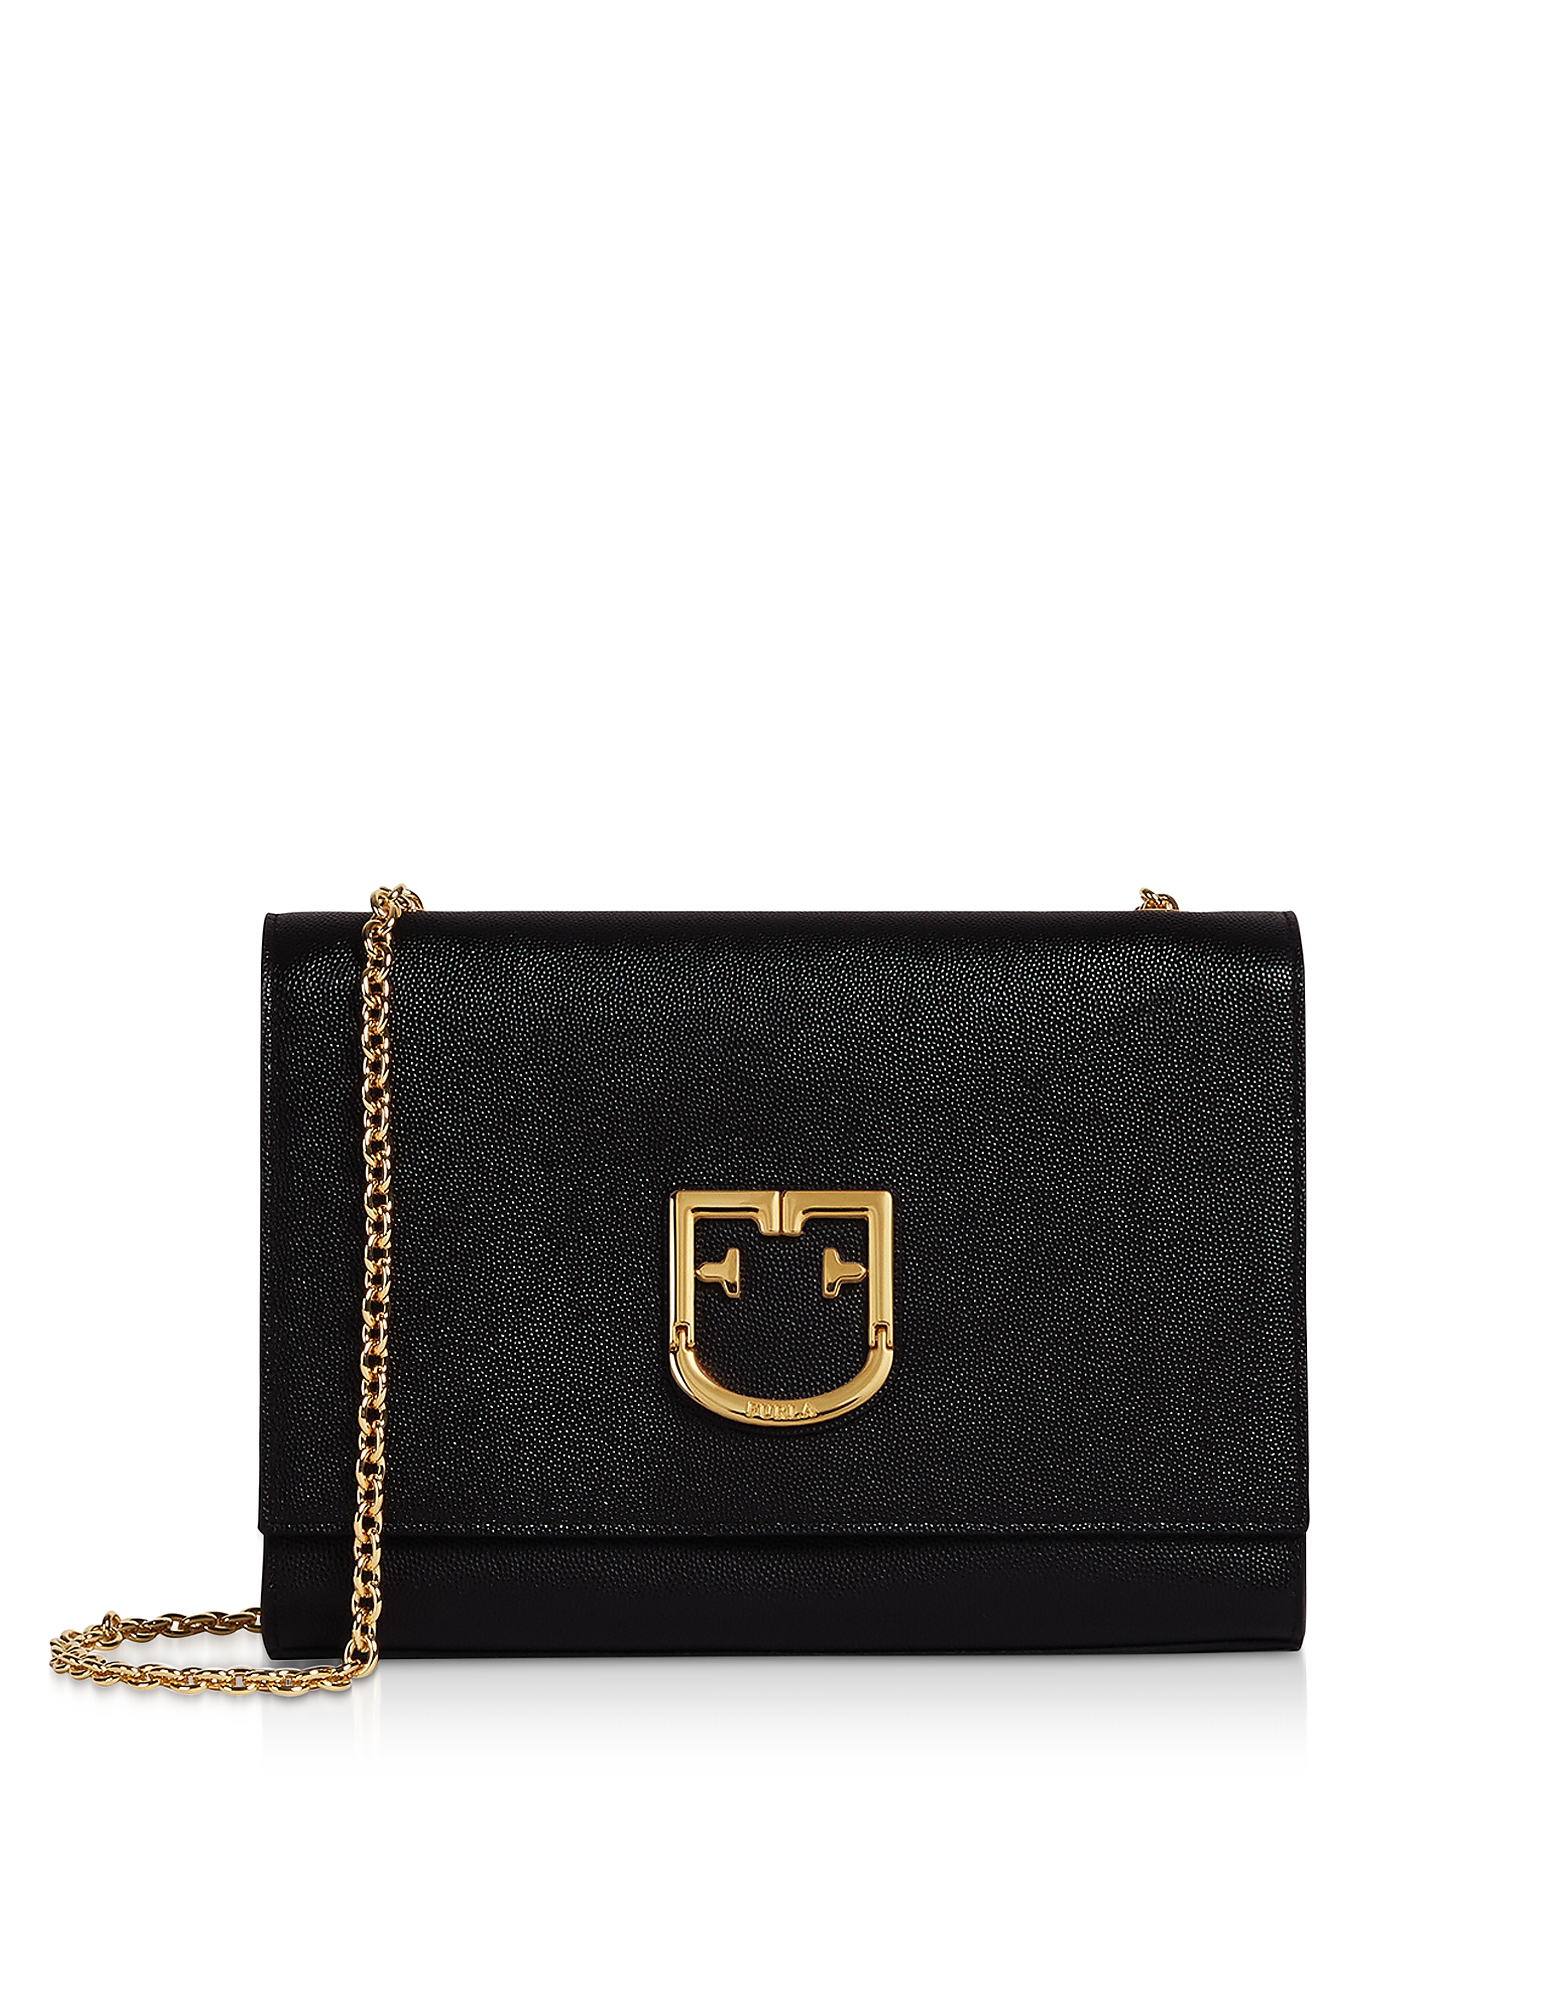 Onyx Leather Viva S Pochette